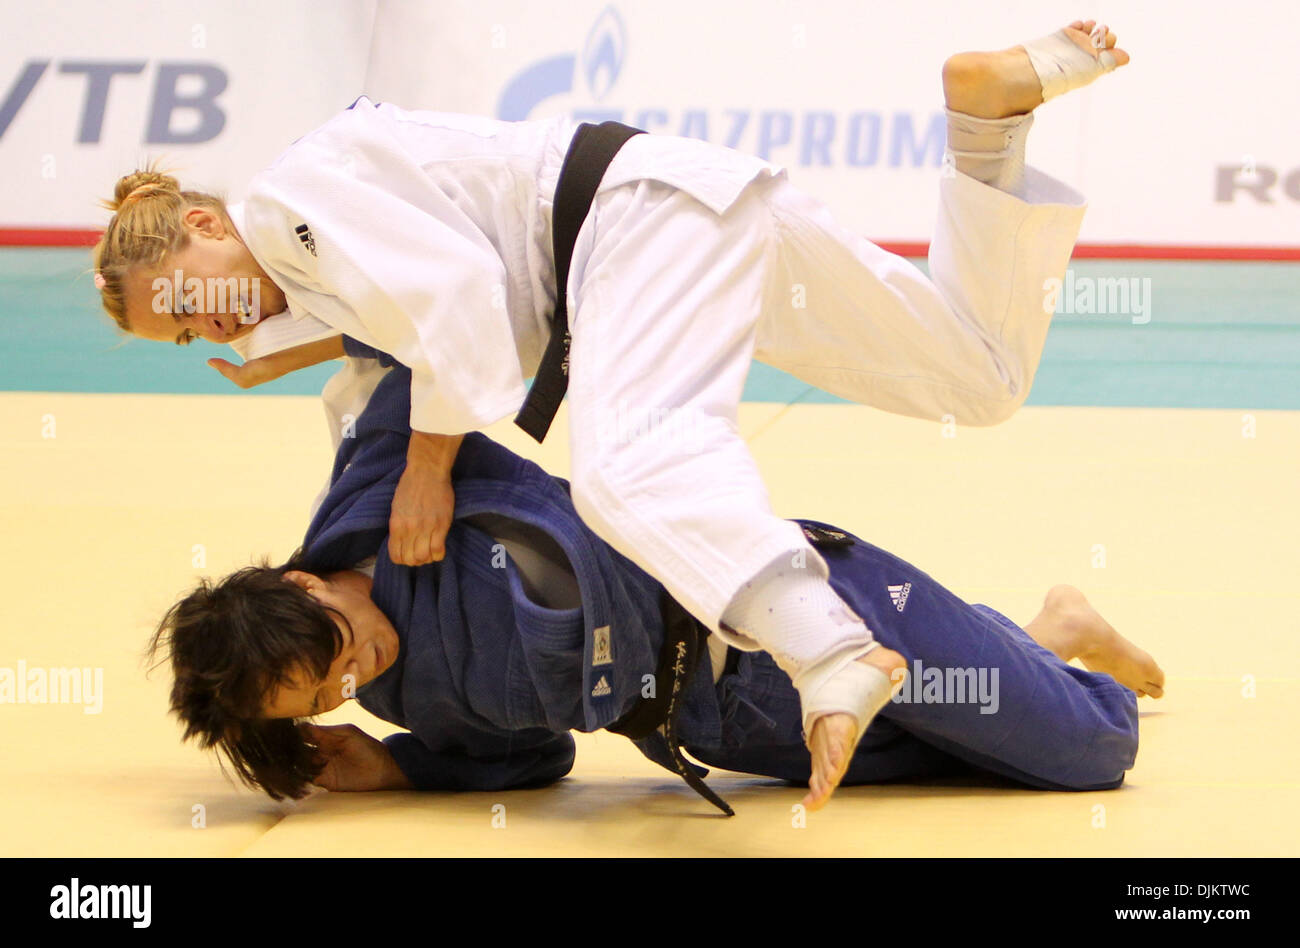 Sep 12, 2010 - Tokyo, Japan - ALINA DUMITRU of Romania and JUNG-YEON CHUNG of Korea compete in a Women -48kg match during the World Judo Championships Tokyo 2010 at the Yoyogi National Gymnasium in Tokyo, Japan. DUMITRU came 3rd in this competition. (Credit Image: © Junko Kimura/Jana/ZUMApress.com) - Stock Image